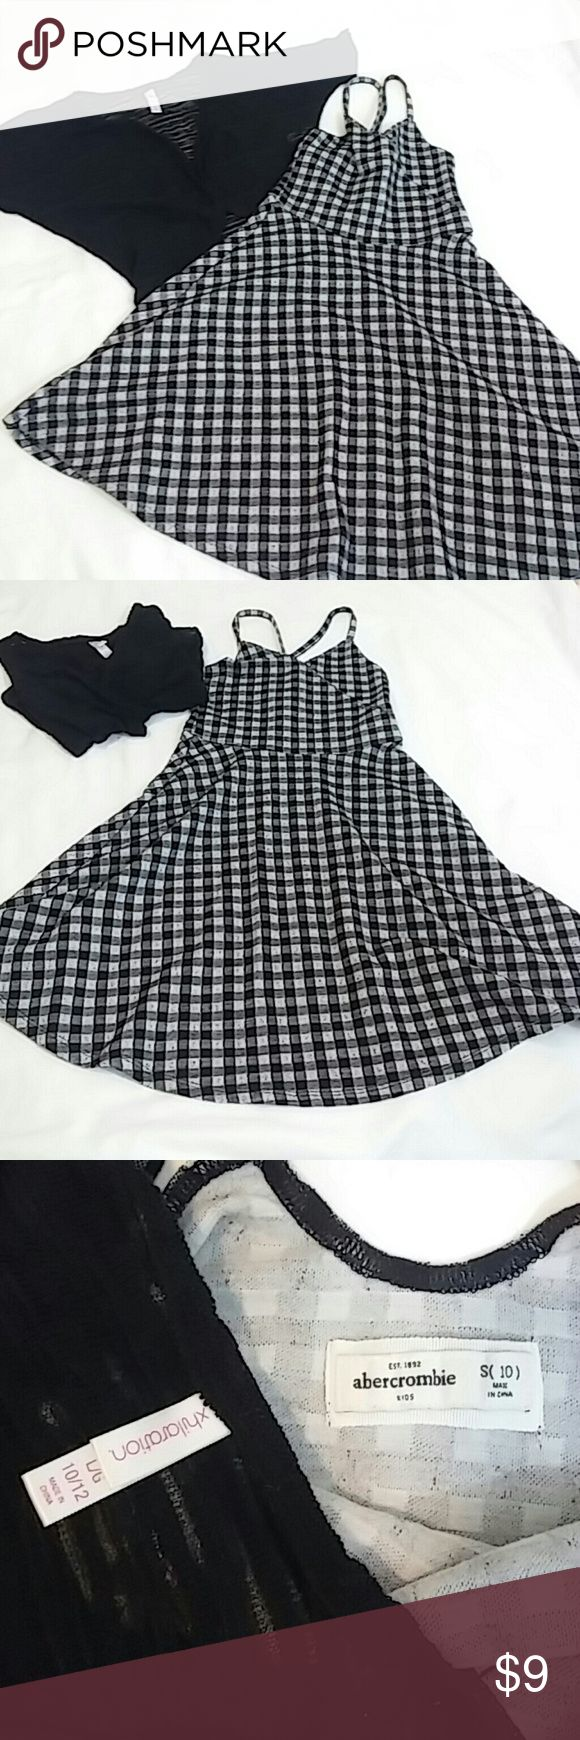 Abercrombie girls dress 10 Abercrombie girls dress size 10 and black xhilaration sweater abercrombie kids Dresses Casual